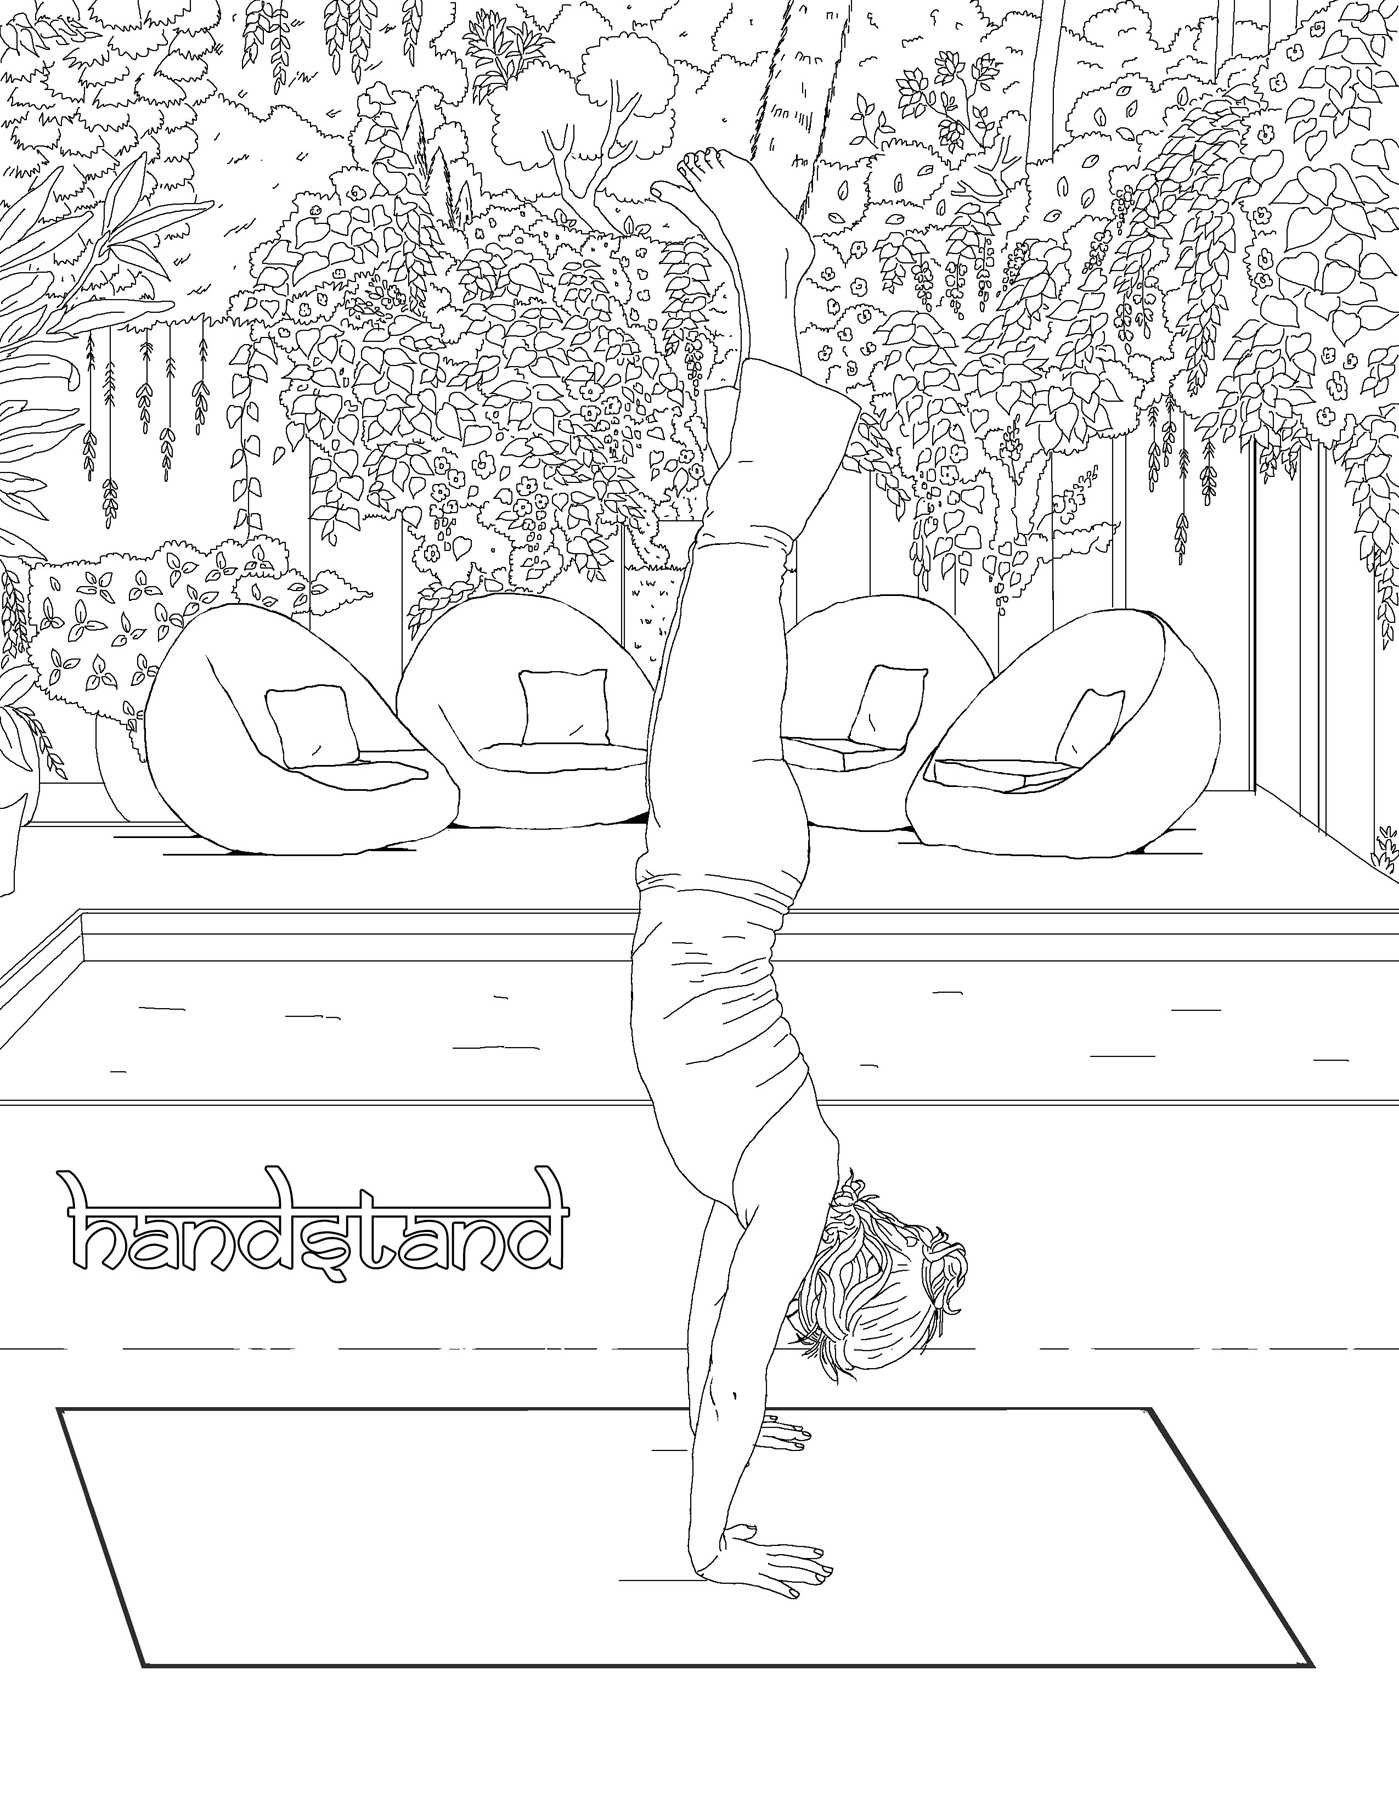 The Yoga Poses Adult Coloring Book By M Anthony